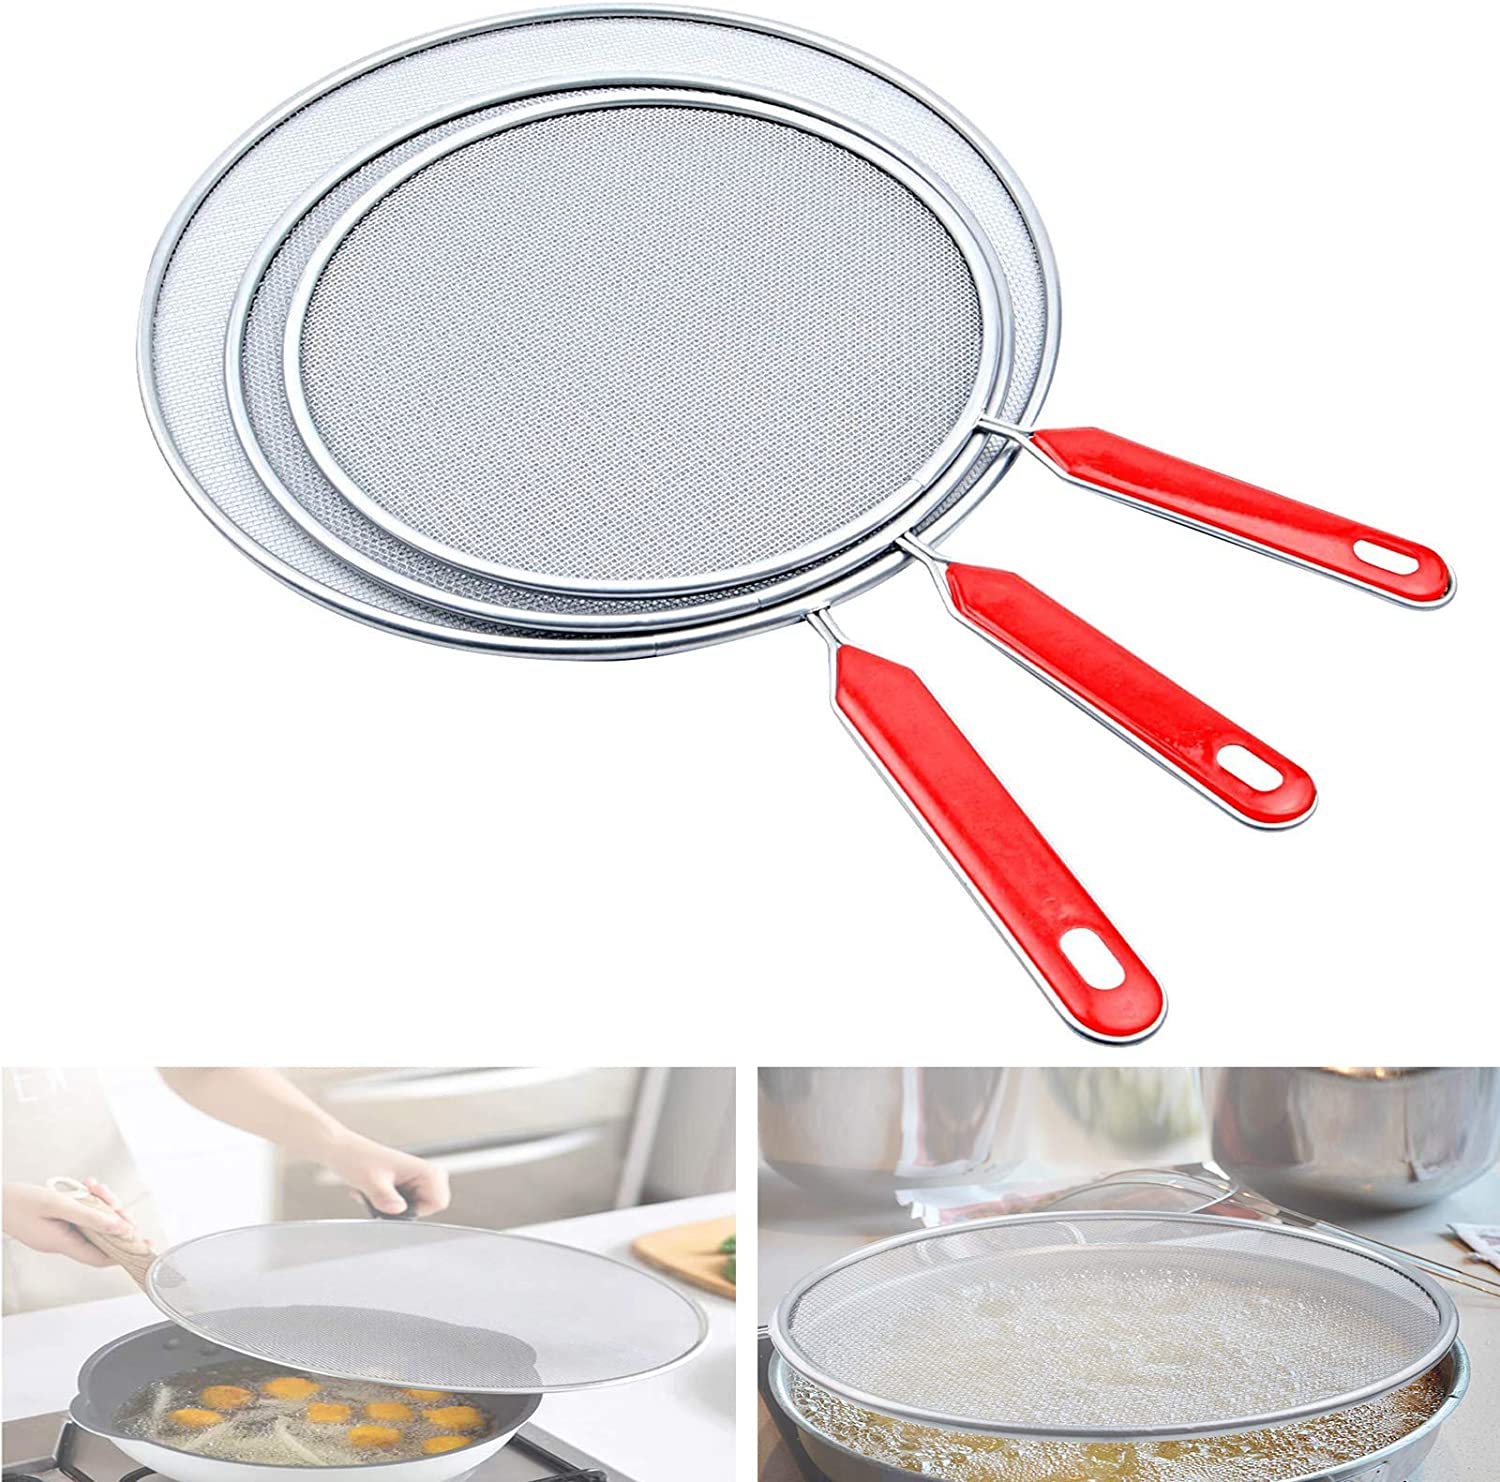 Super Fine Mesh Iron Skillet Lid for Kitchen Frying Pan Cooking Supplies 3 Pieces Grease Splatter Screen For Frying Pan Cooking 7.5in, 8.3in, 10in Stainless Steel Grease Splatter Guard